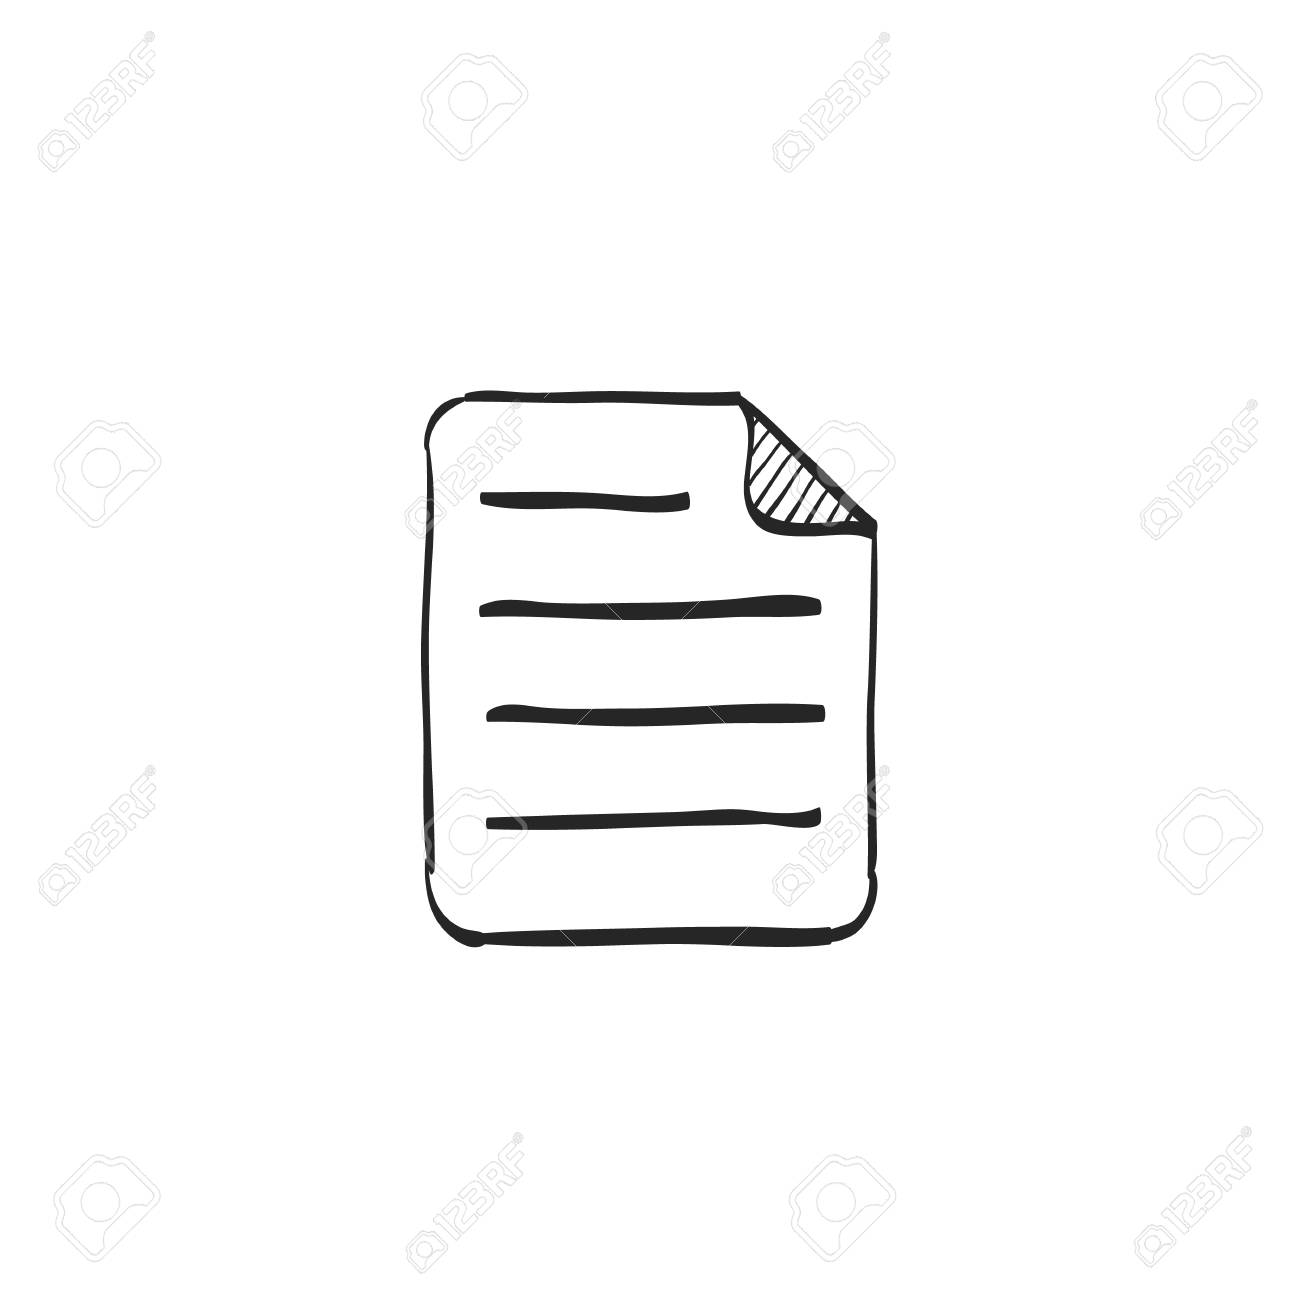 Text file format icon in doodle sketch lines  Document computer